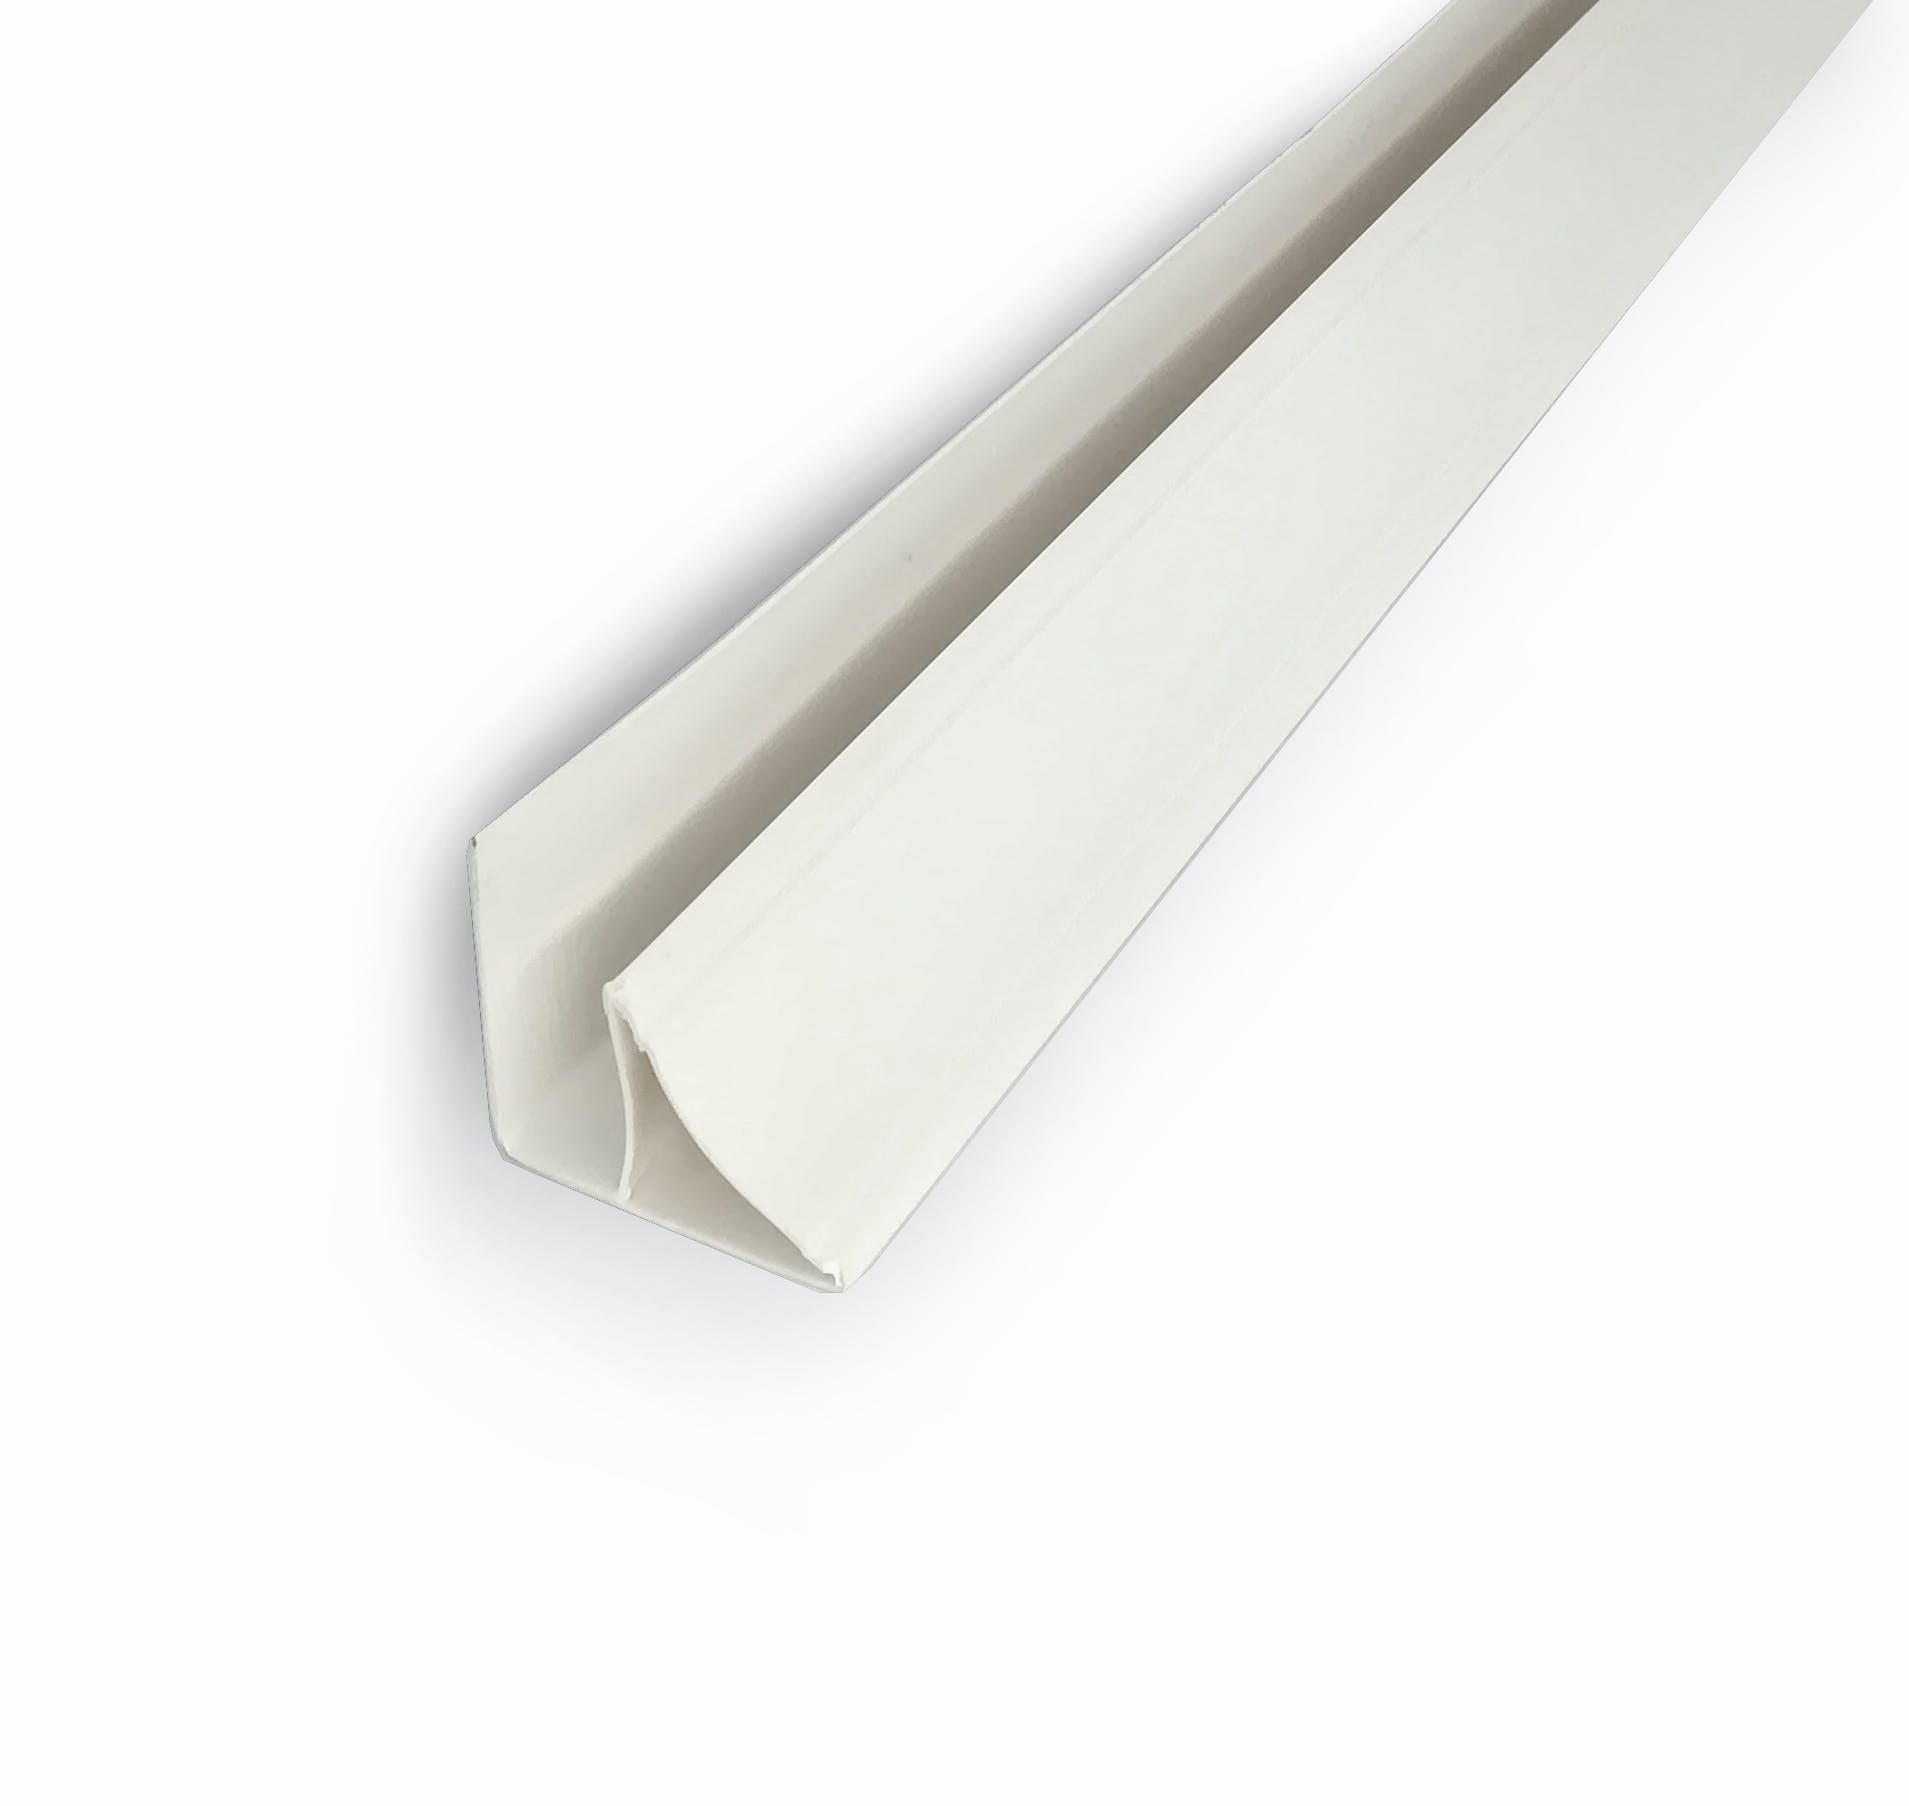 Ancona Ceiling Panel Coving Trim- White PVC